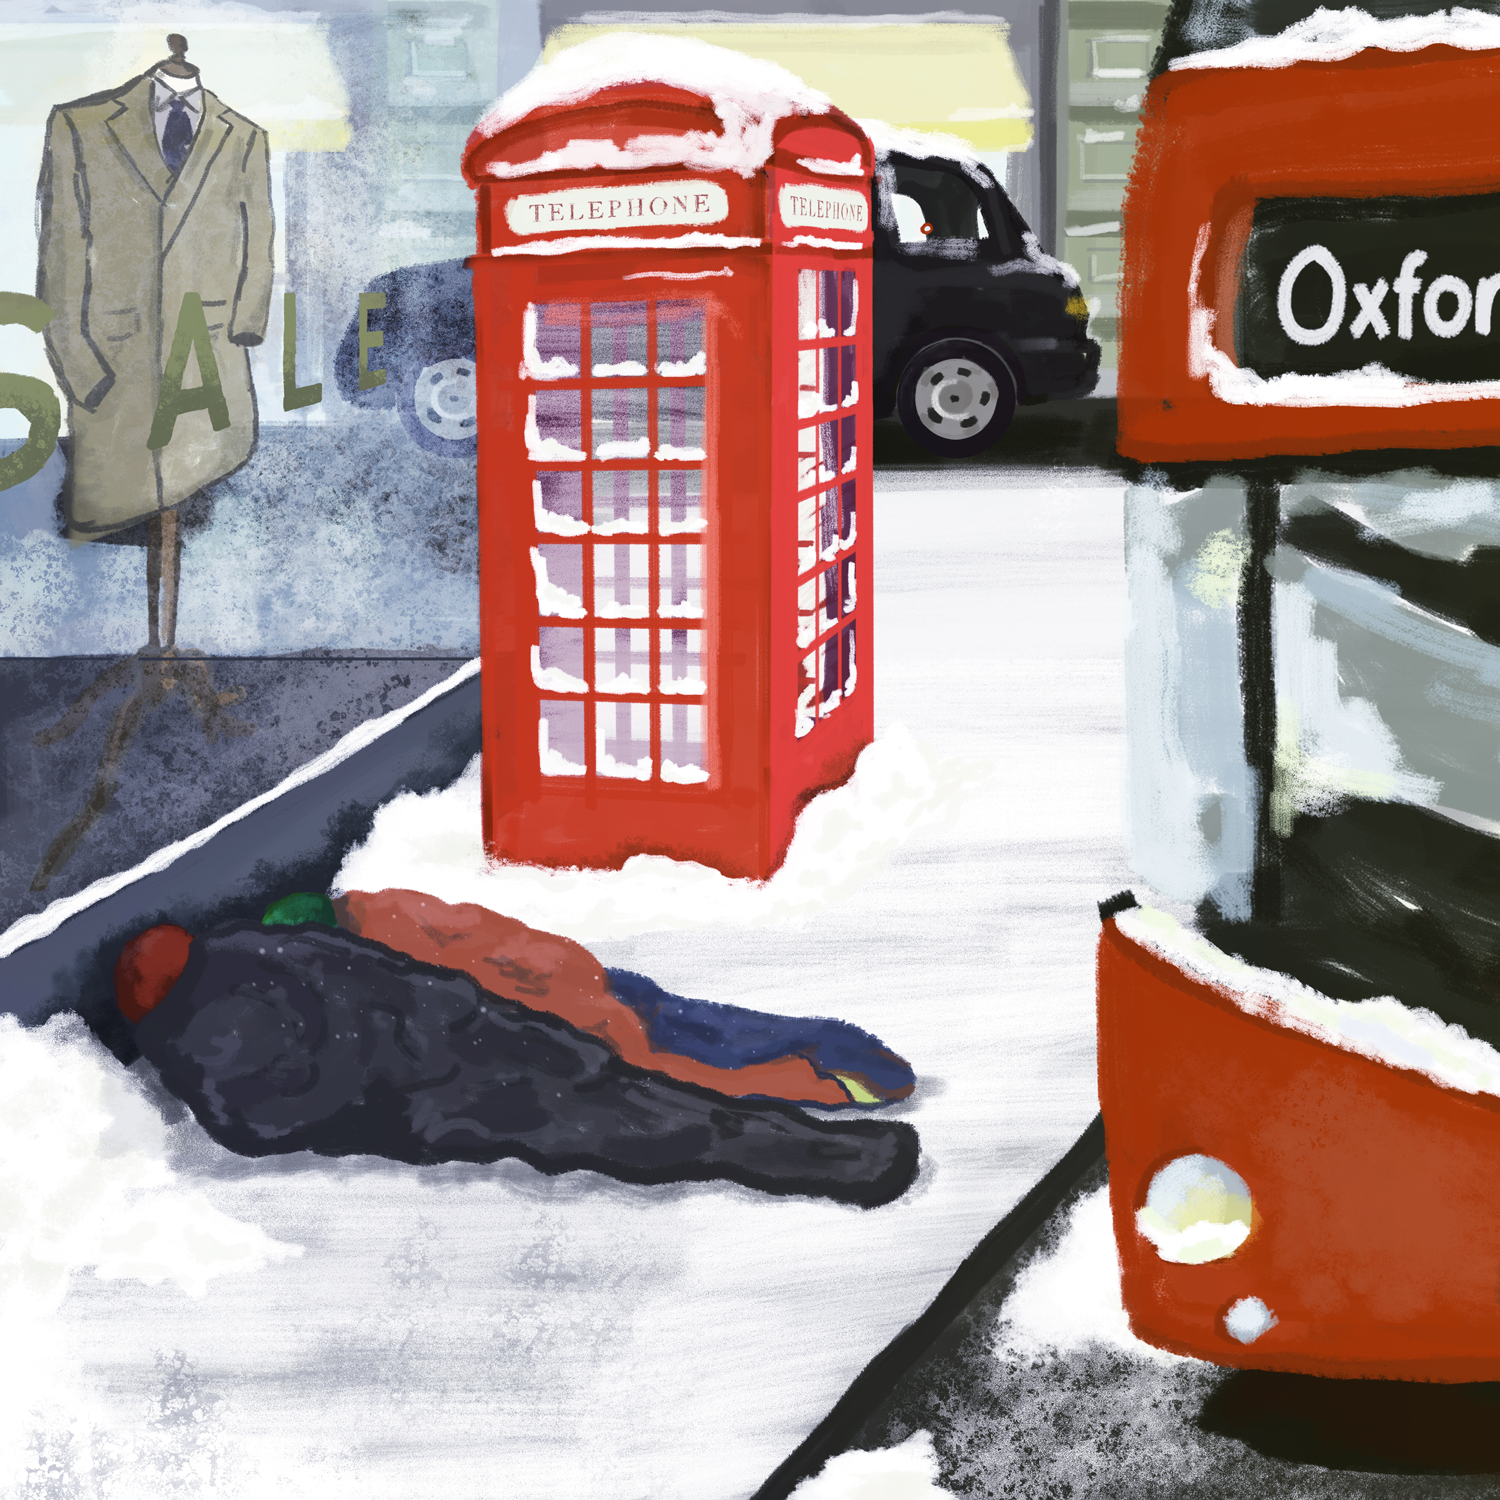 An illustration to raise awareness about London's homeless